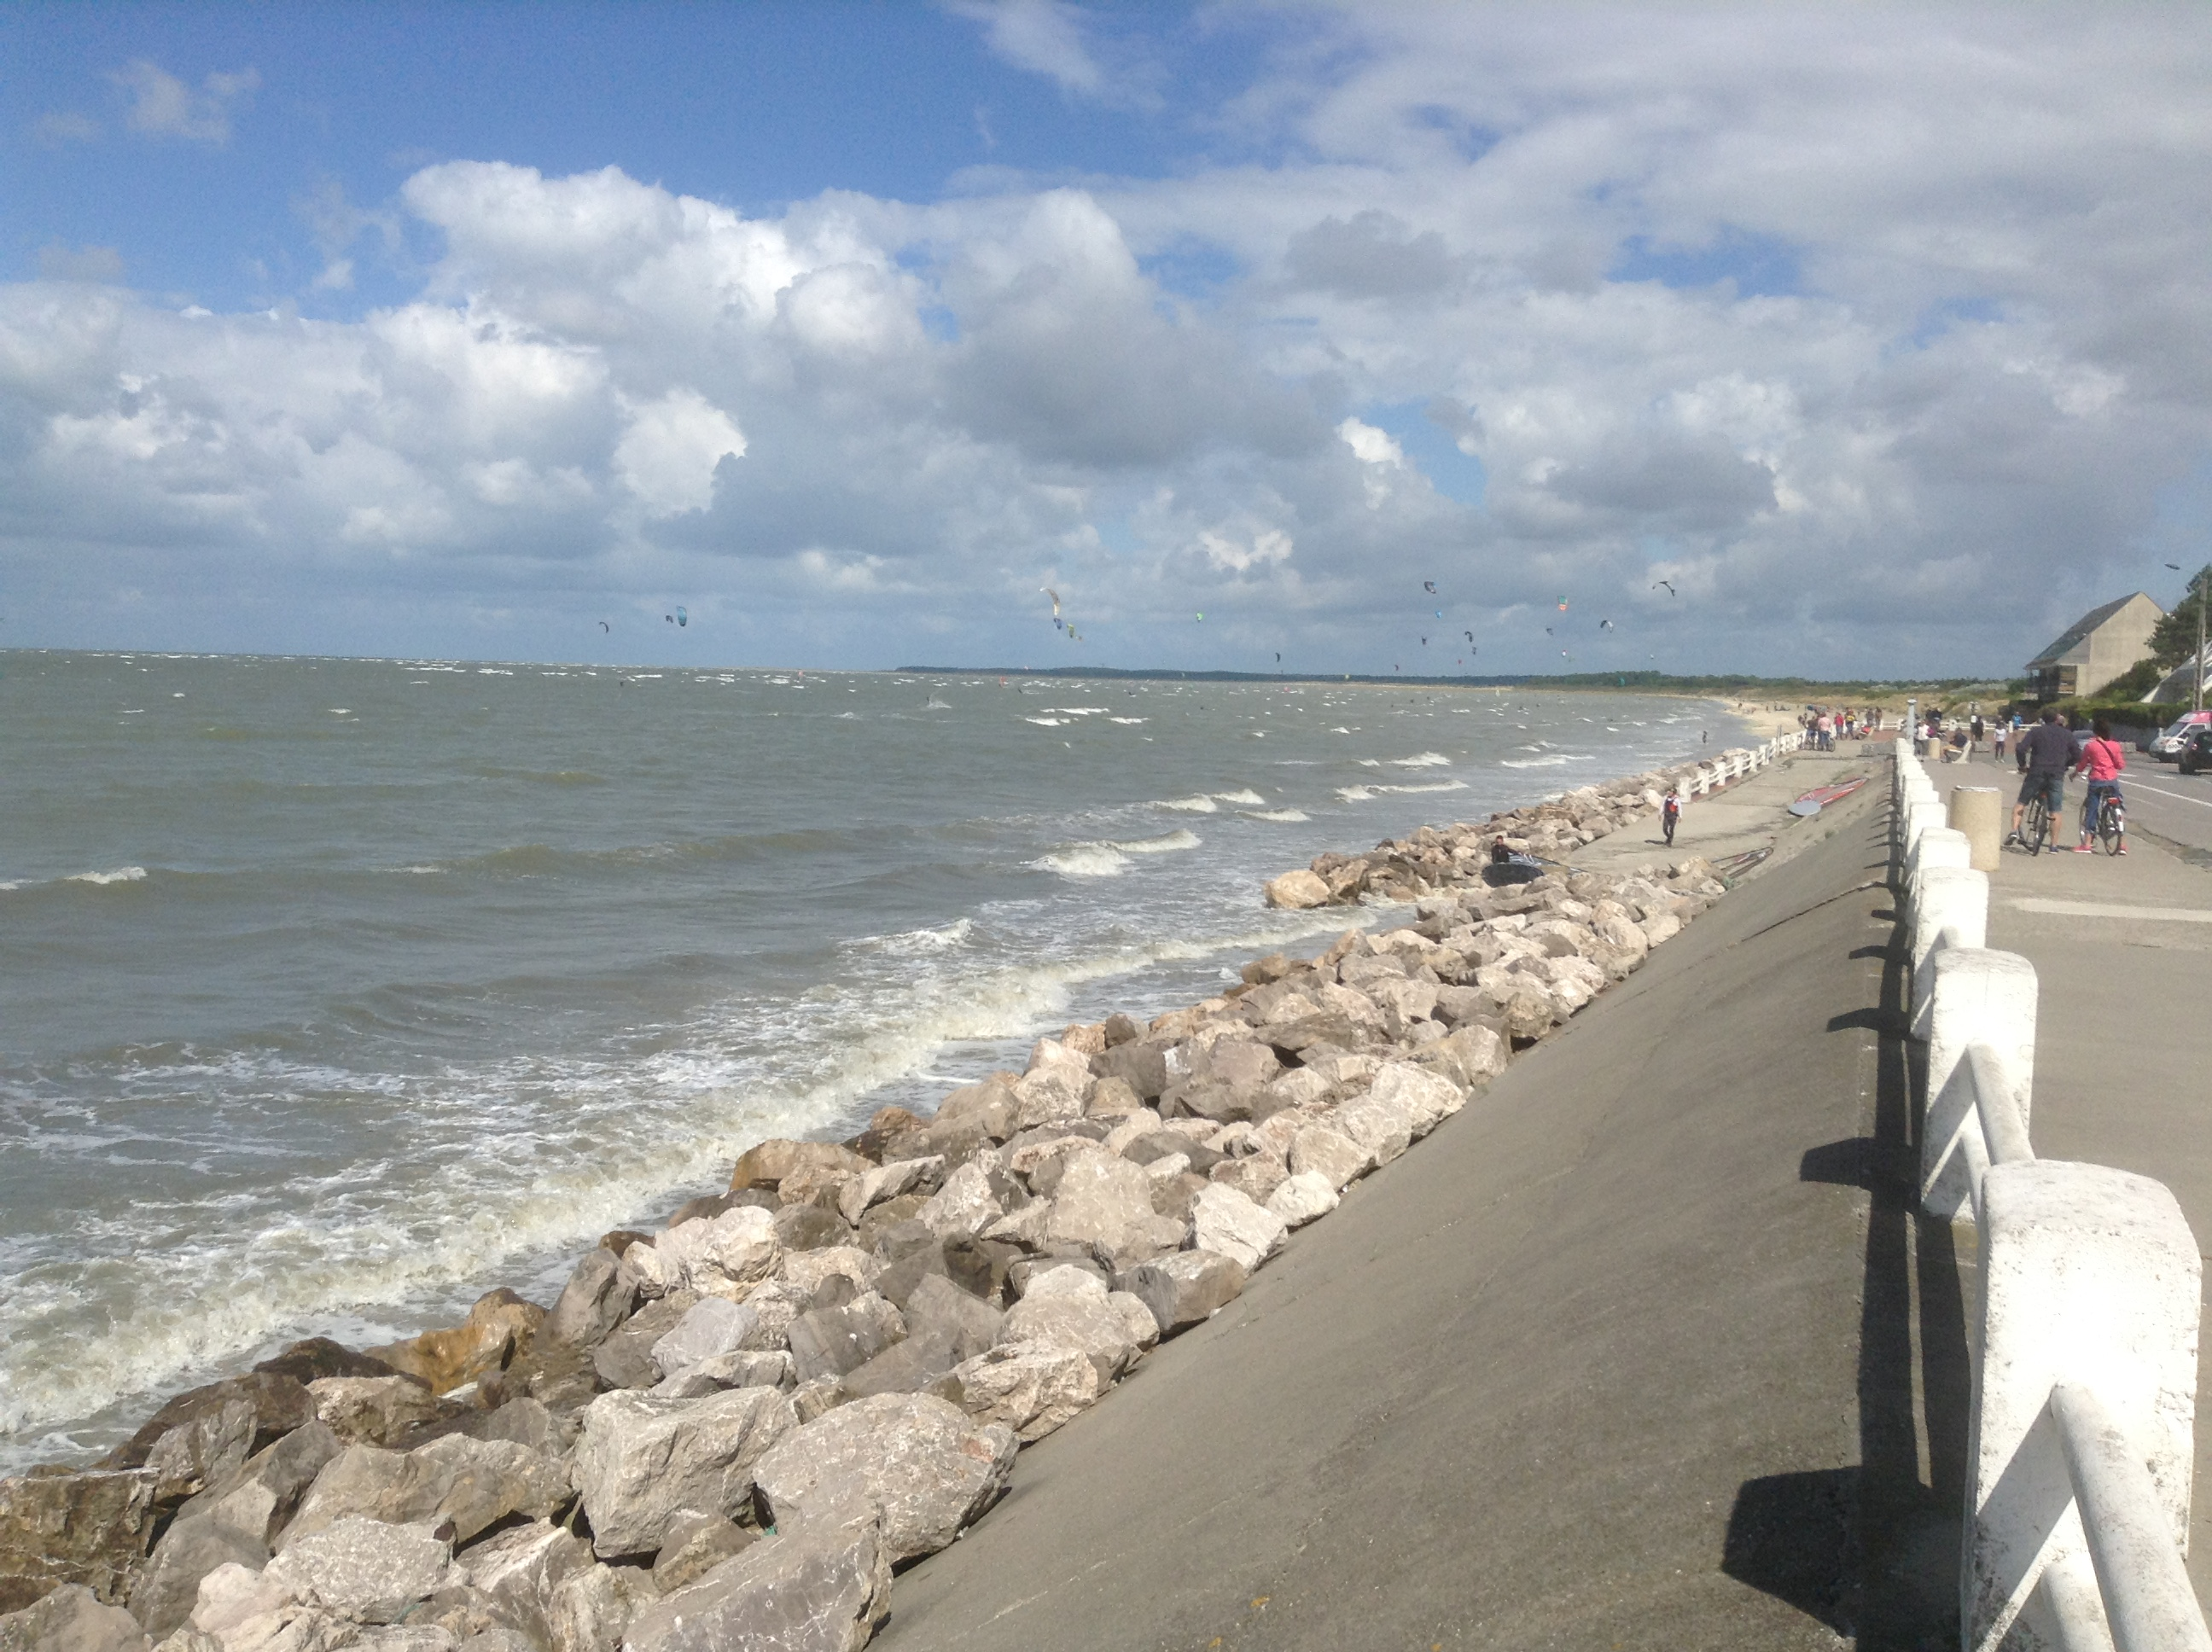 At Le Crotoy, Baie de Somme